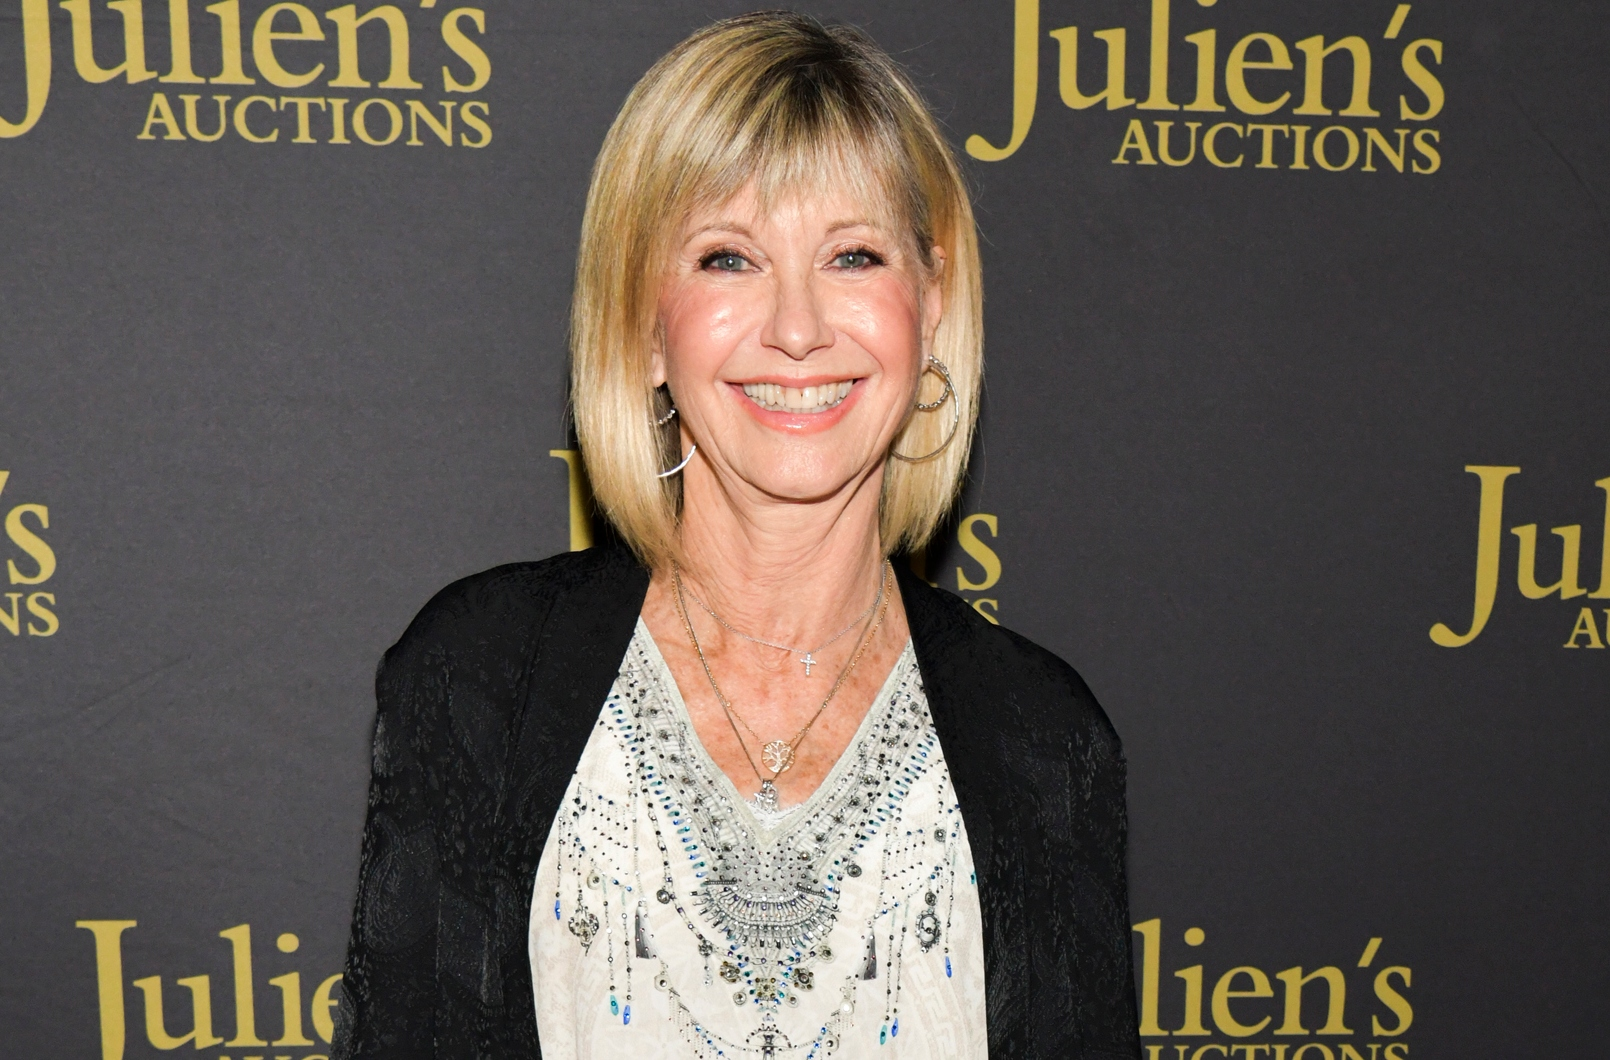 Olivia Newton John Opens Up About Overwhelming Cancer Diagnosis